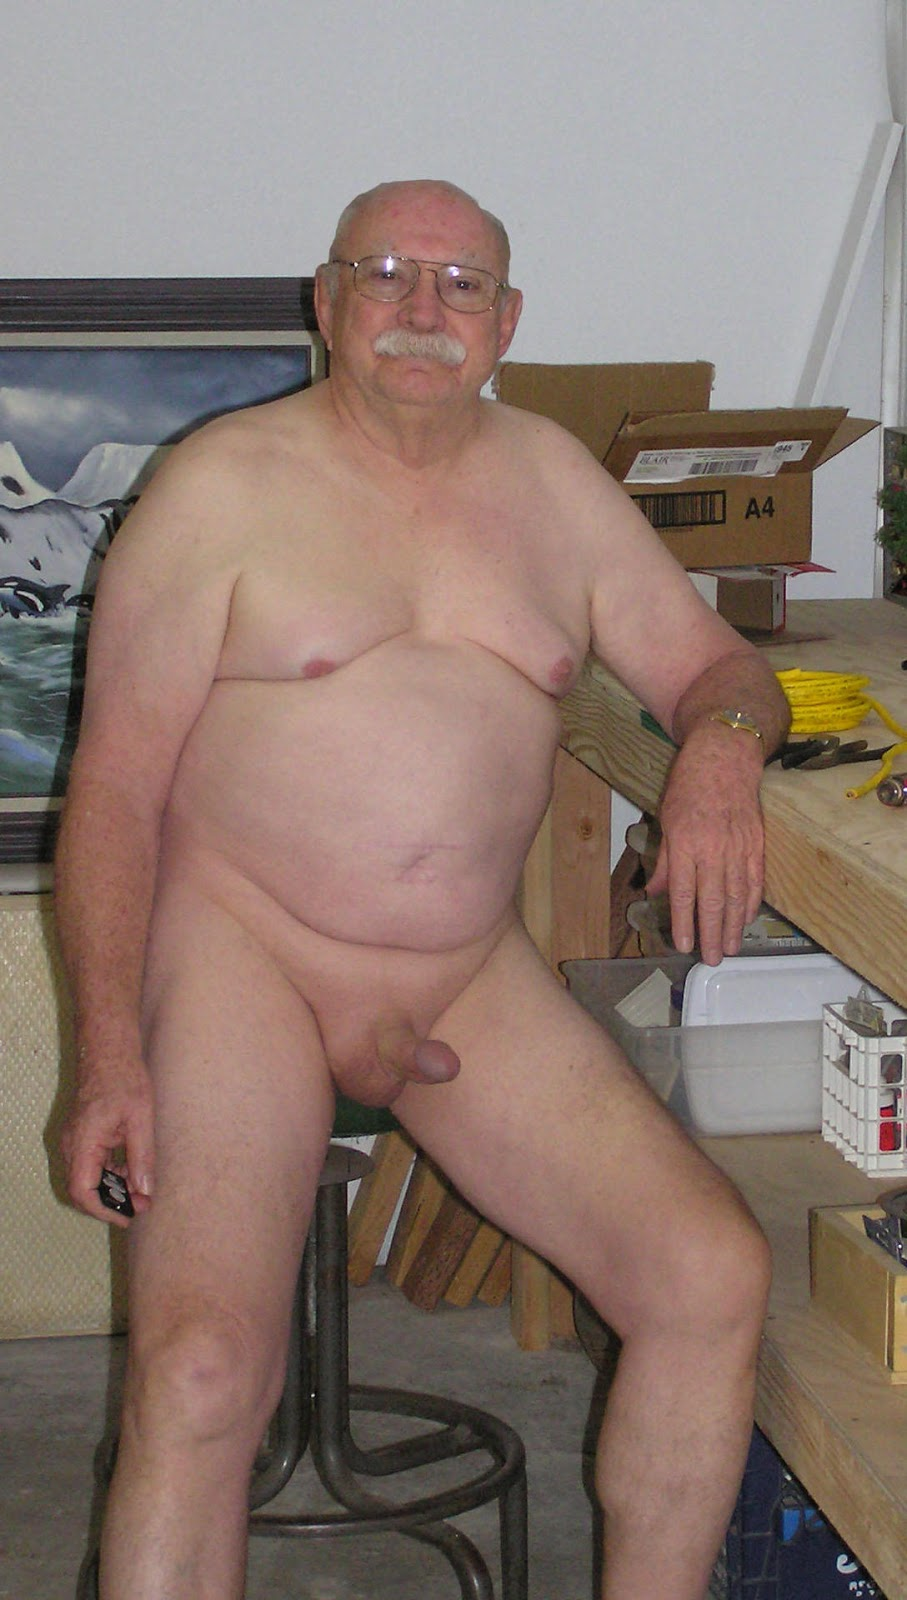 naked grandpa - nude grandpa - oldermen dick